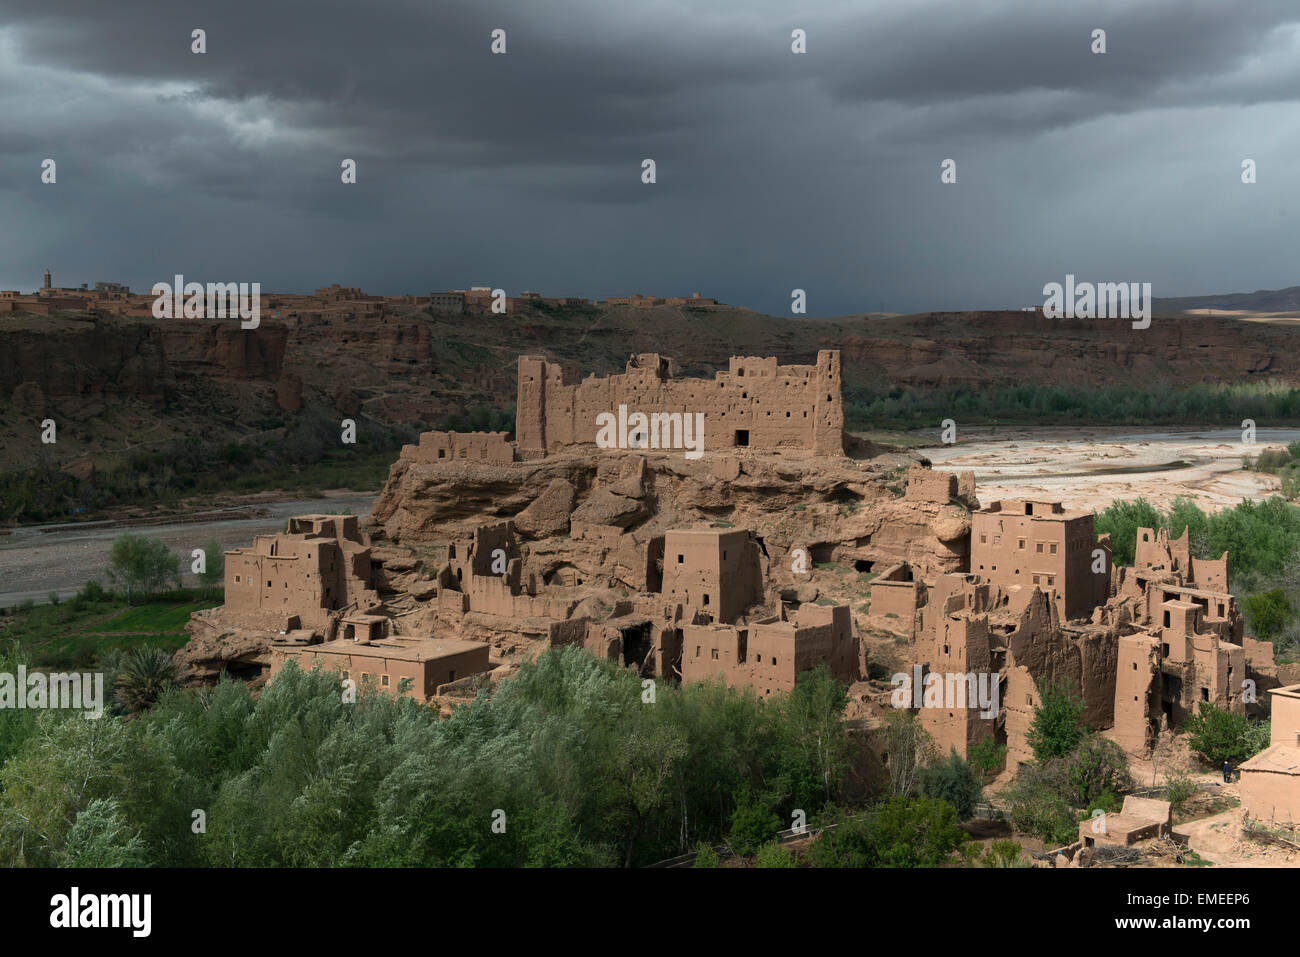 Old Kasbah, made of packed earth, in Kelaa M'Gouna, on Dades River.  High Atlas Mountains, Morocco. - Stock Image